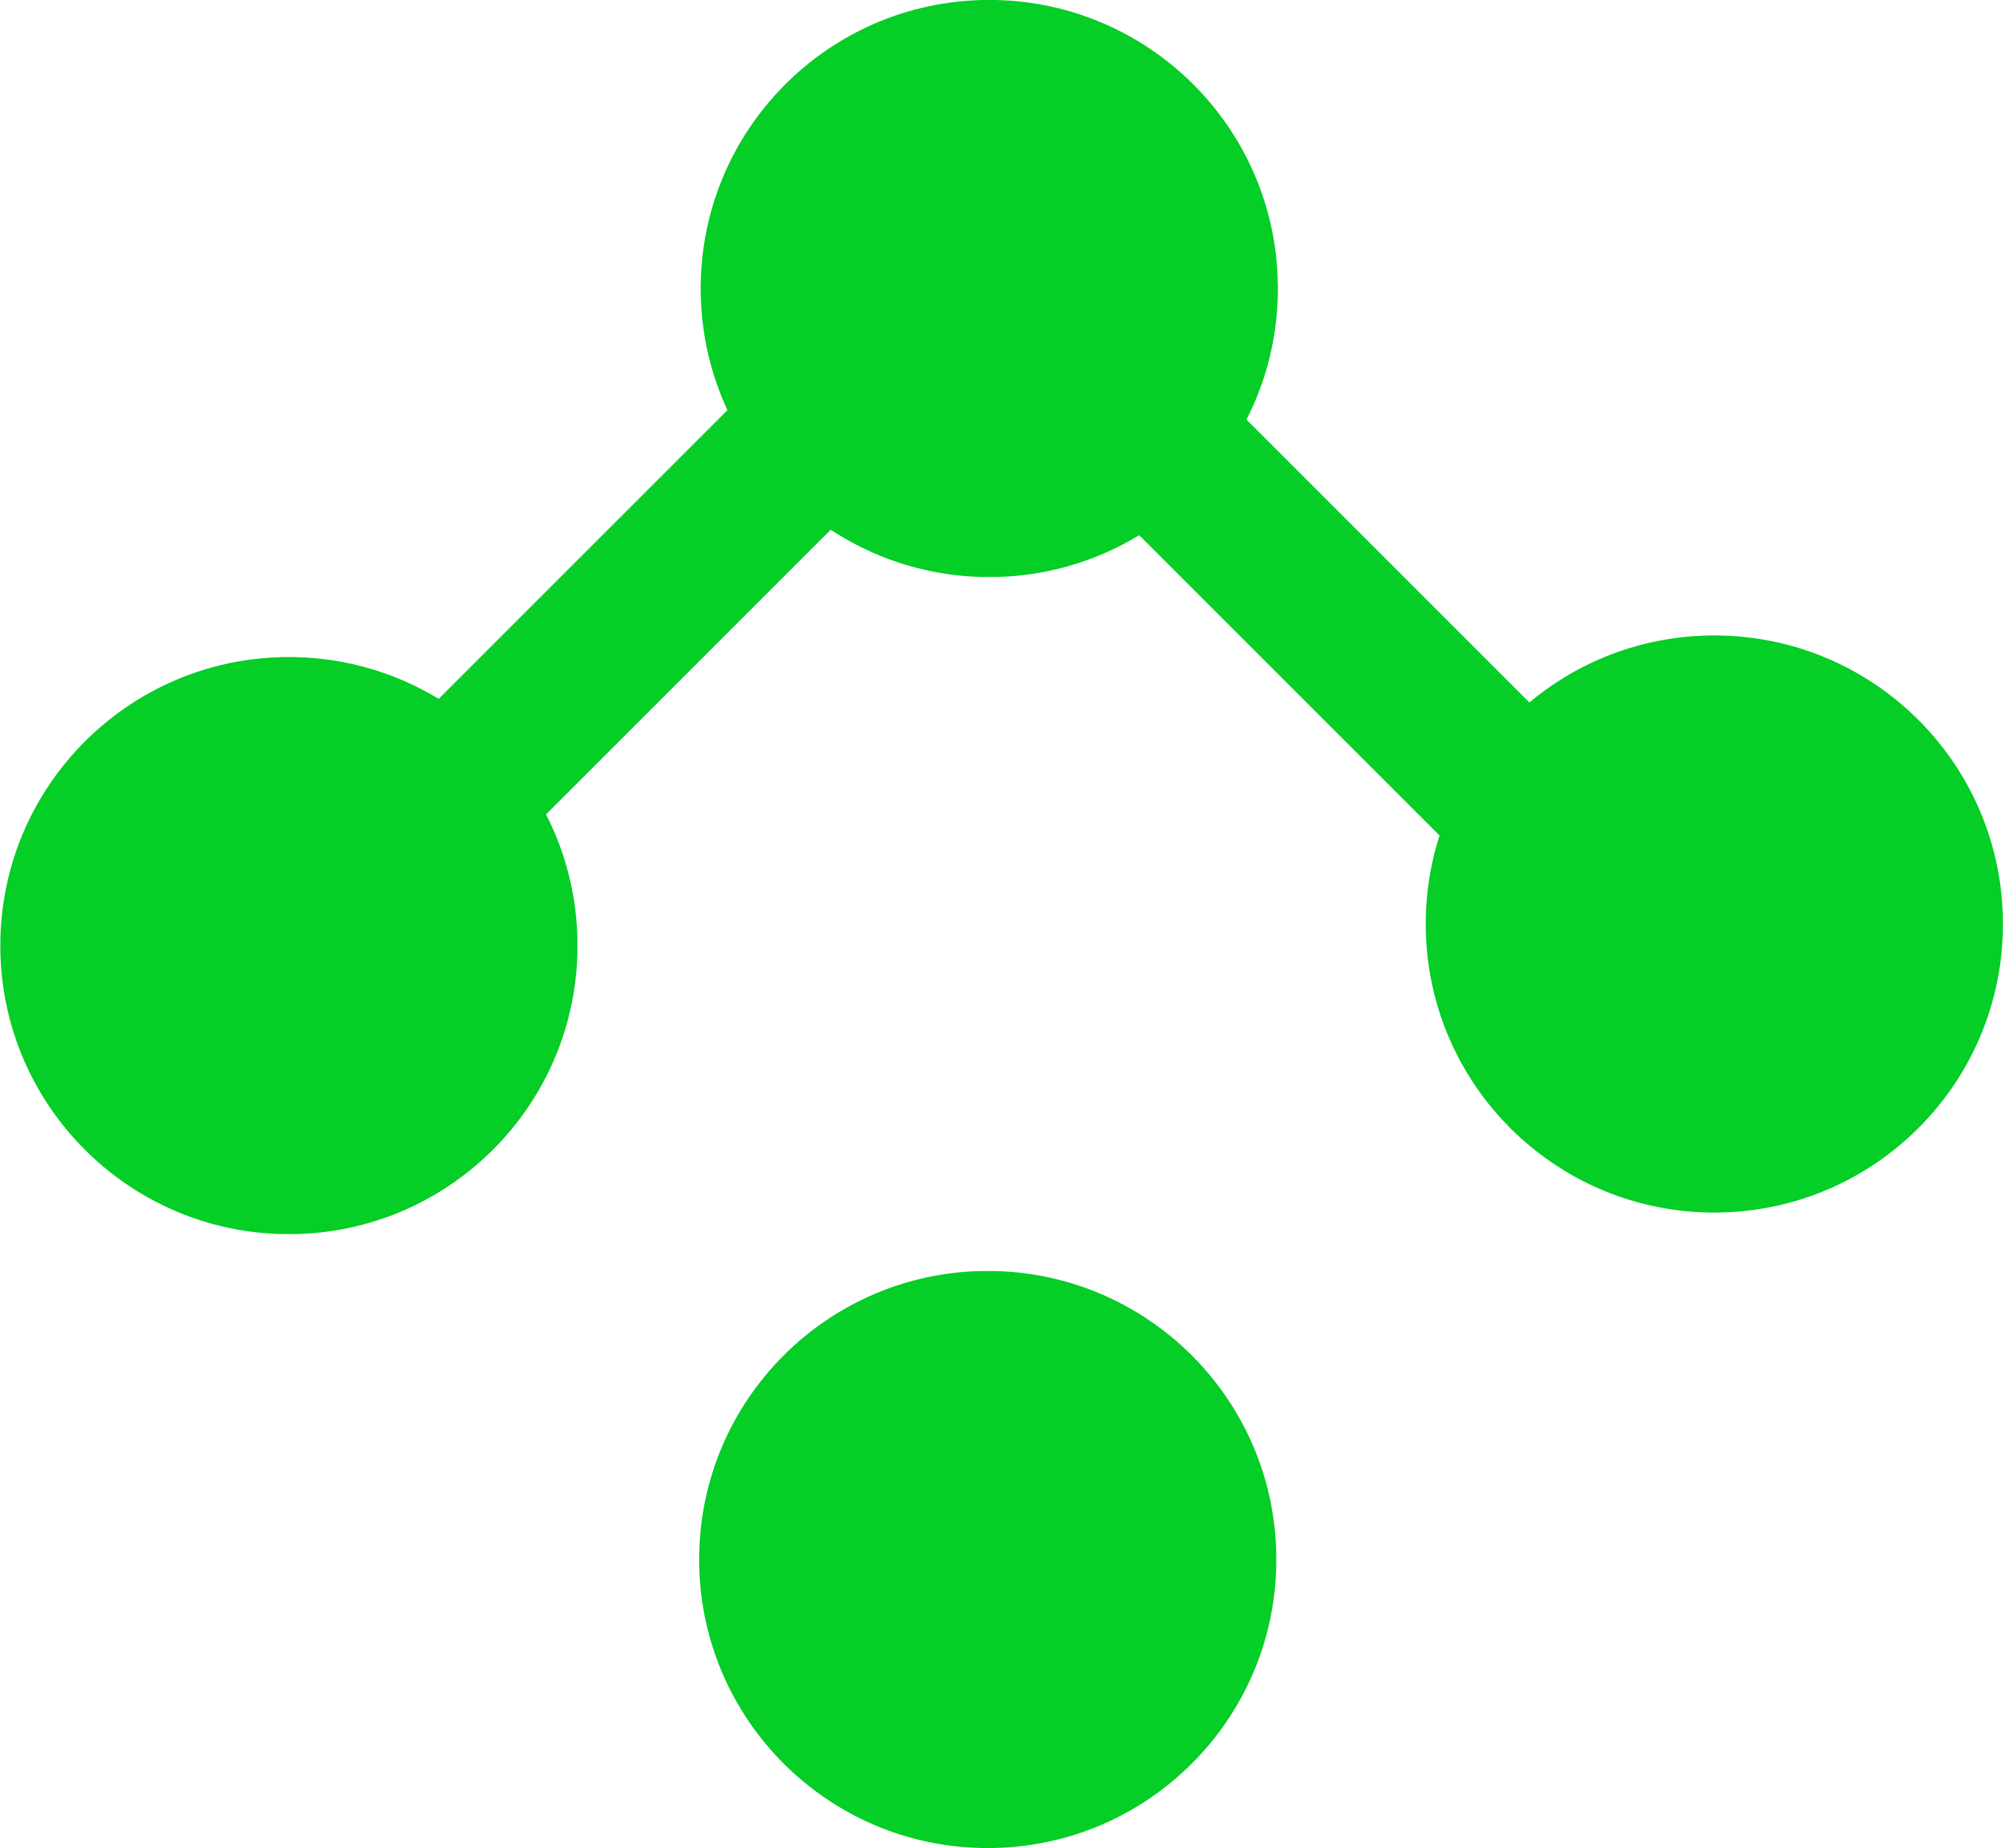 Green Synapses